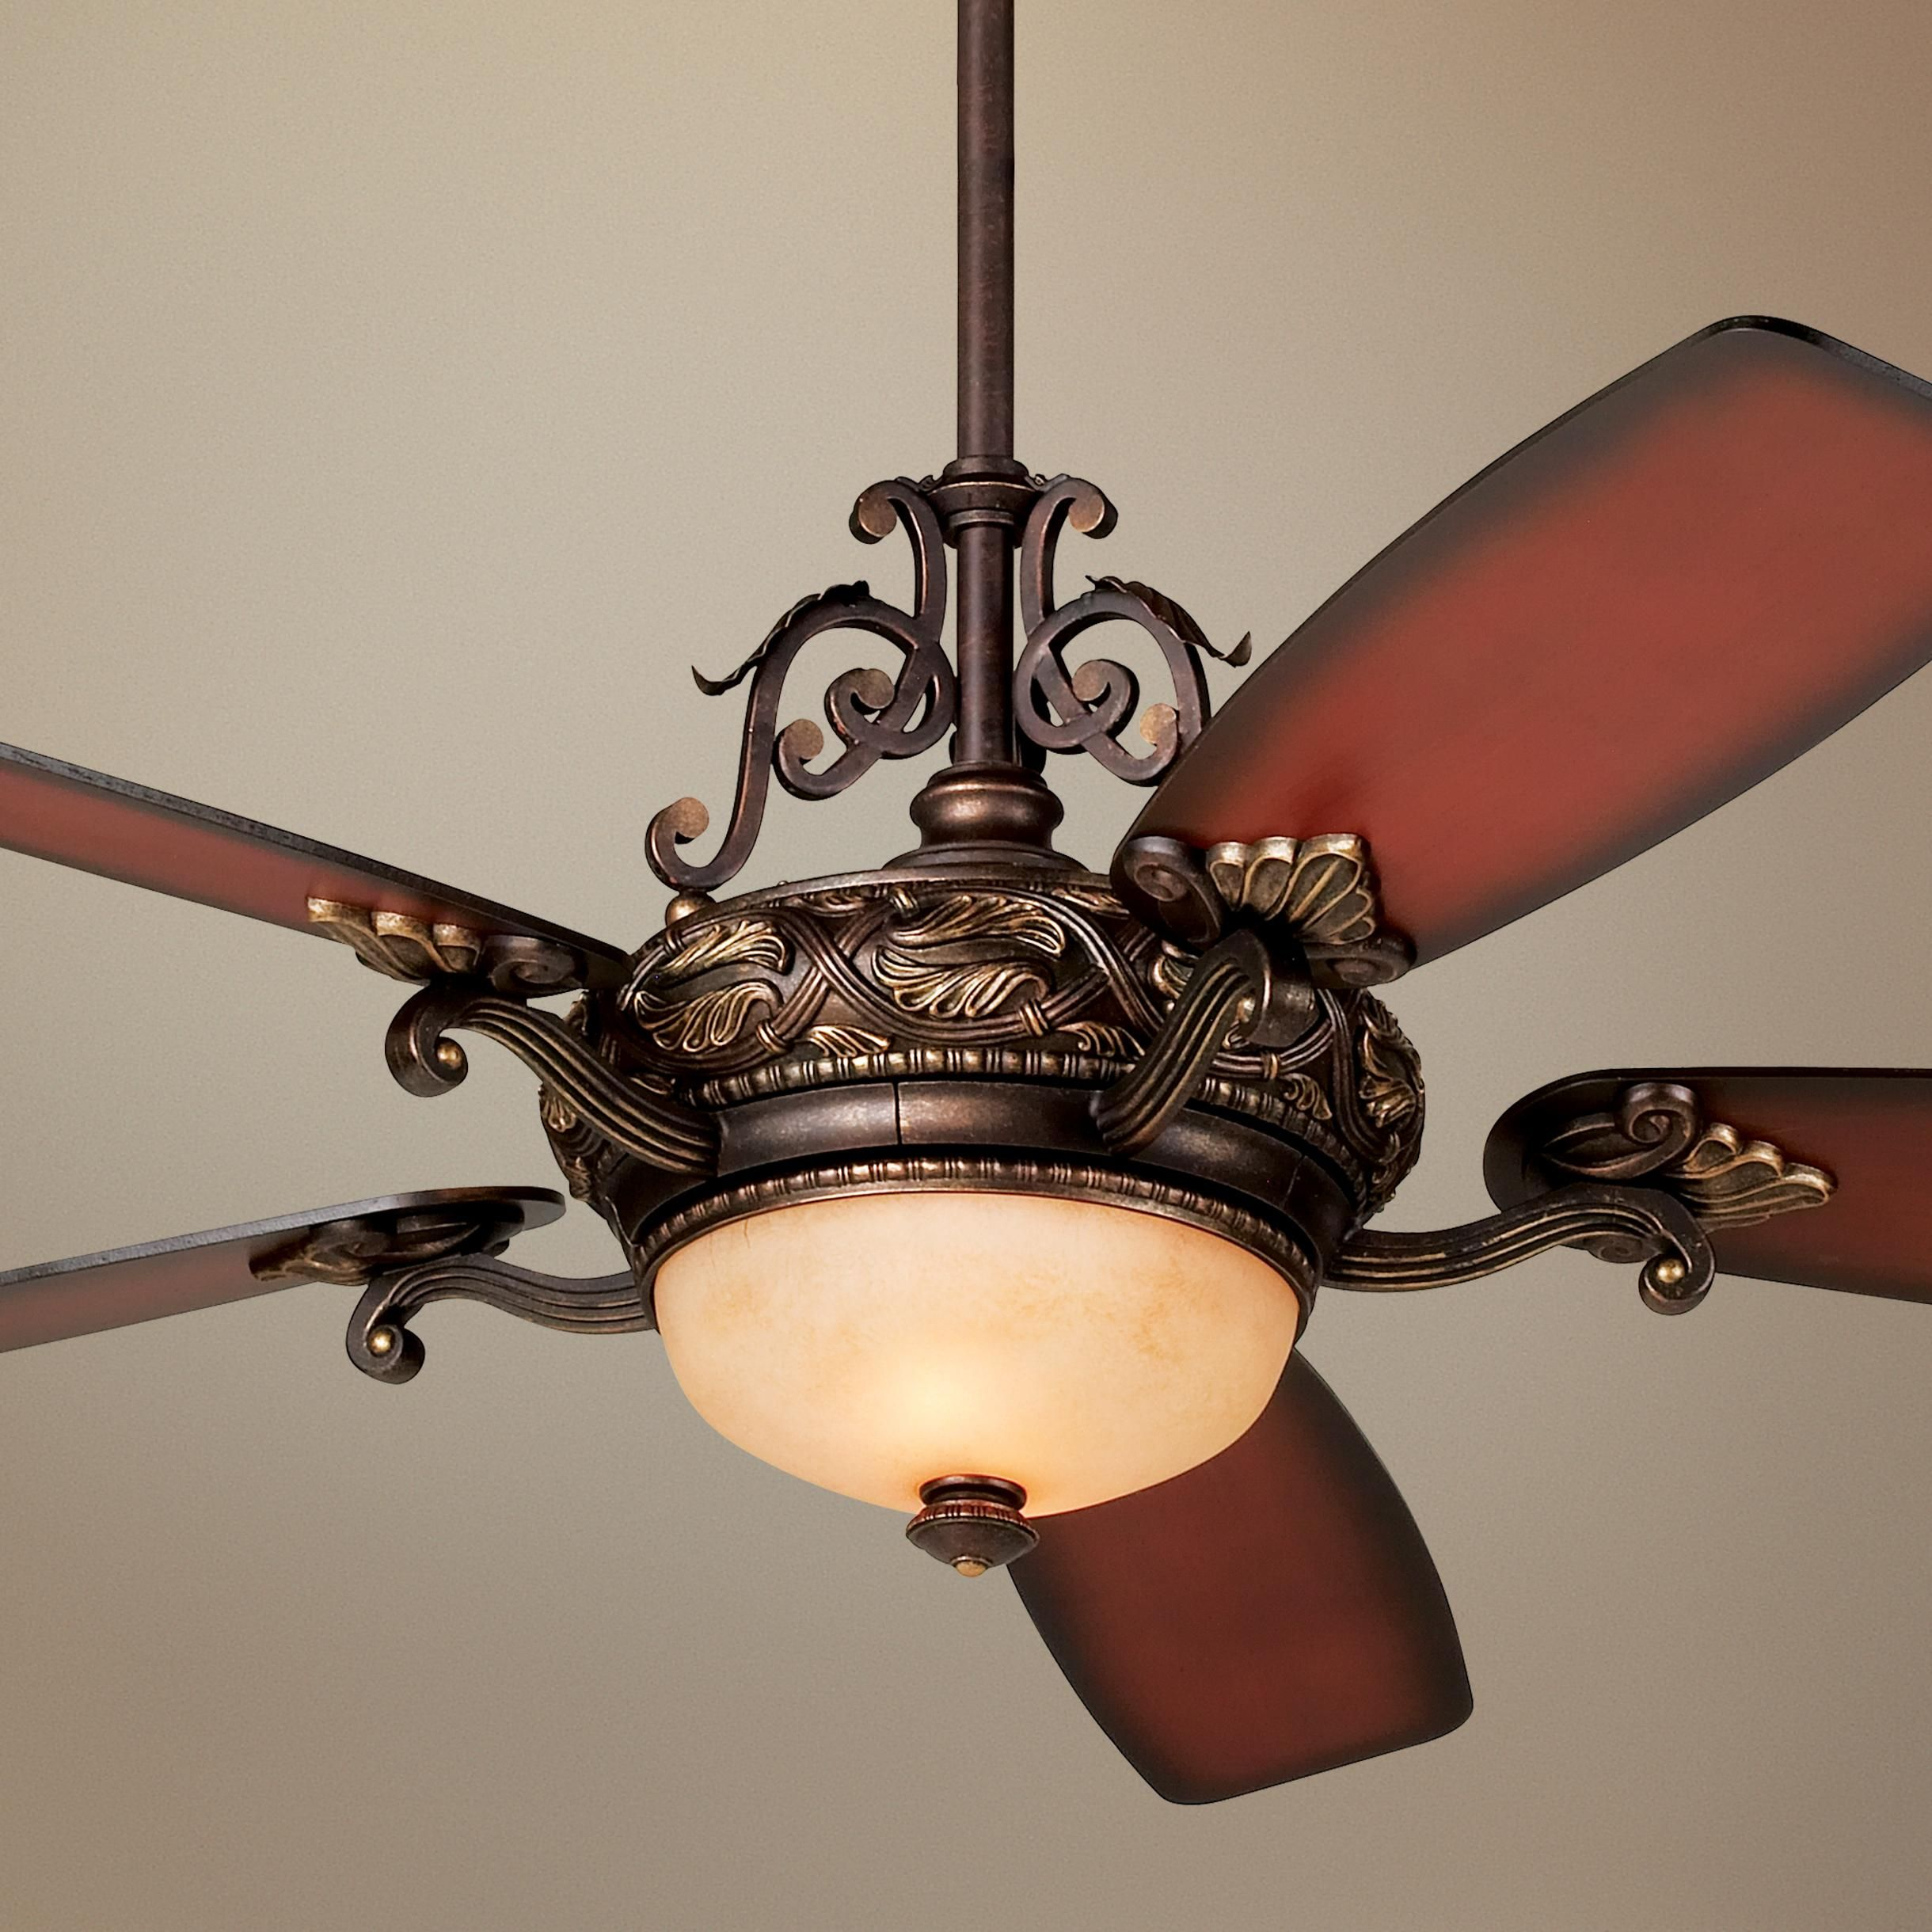 56 Casa Esperanza Teak Shaded Blades Ceiling Fan 25187